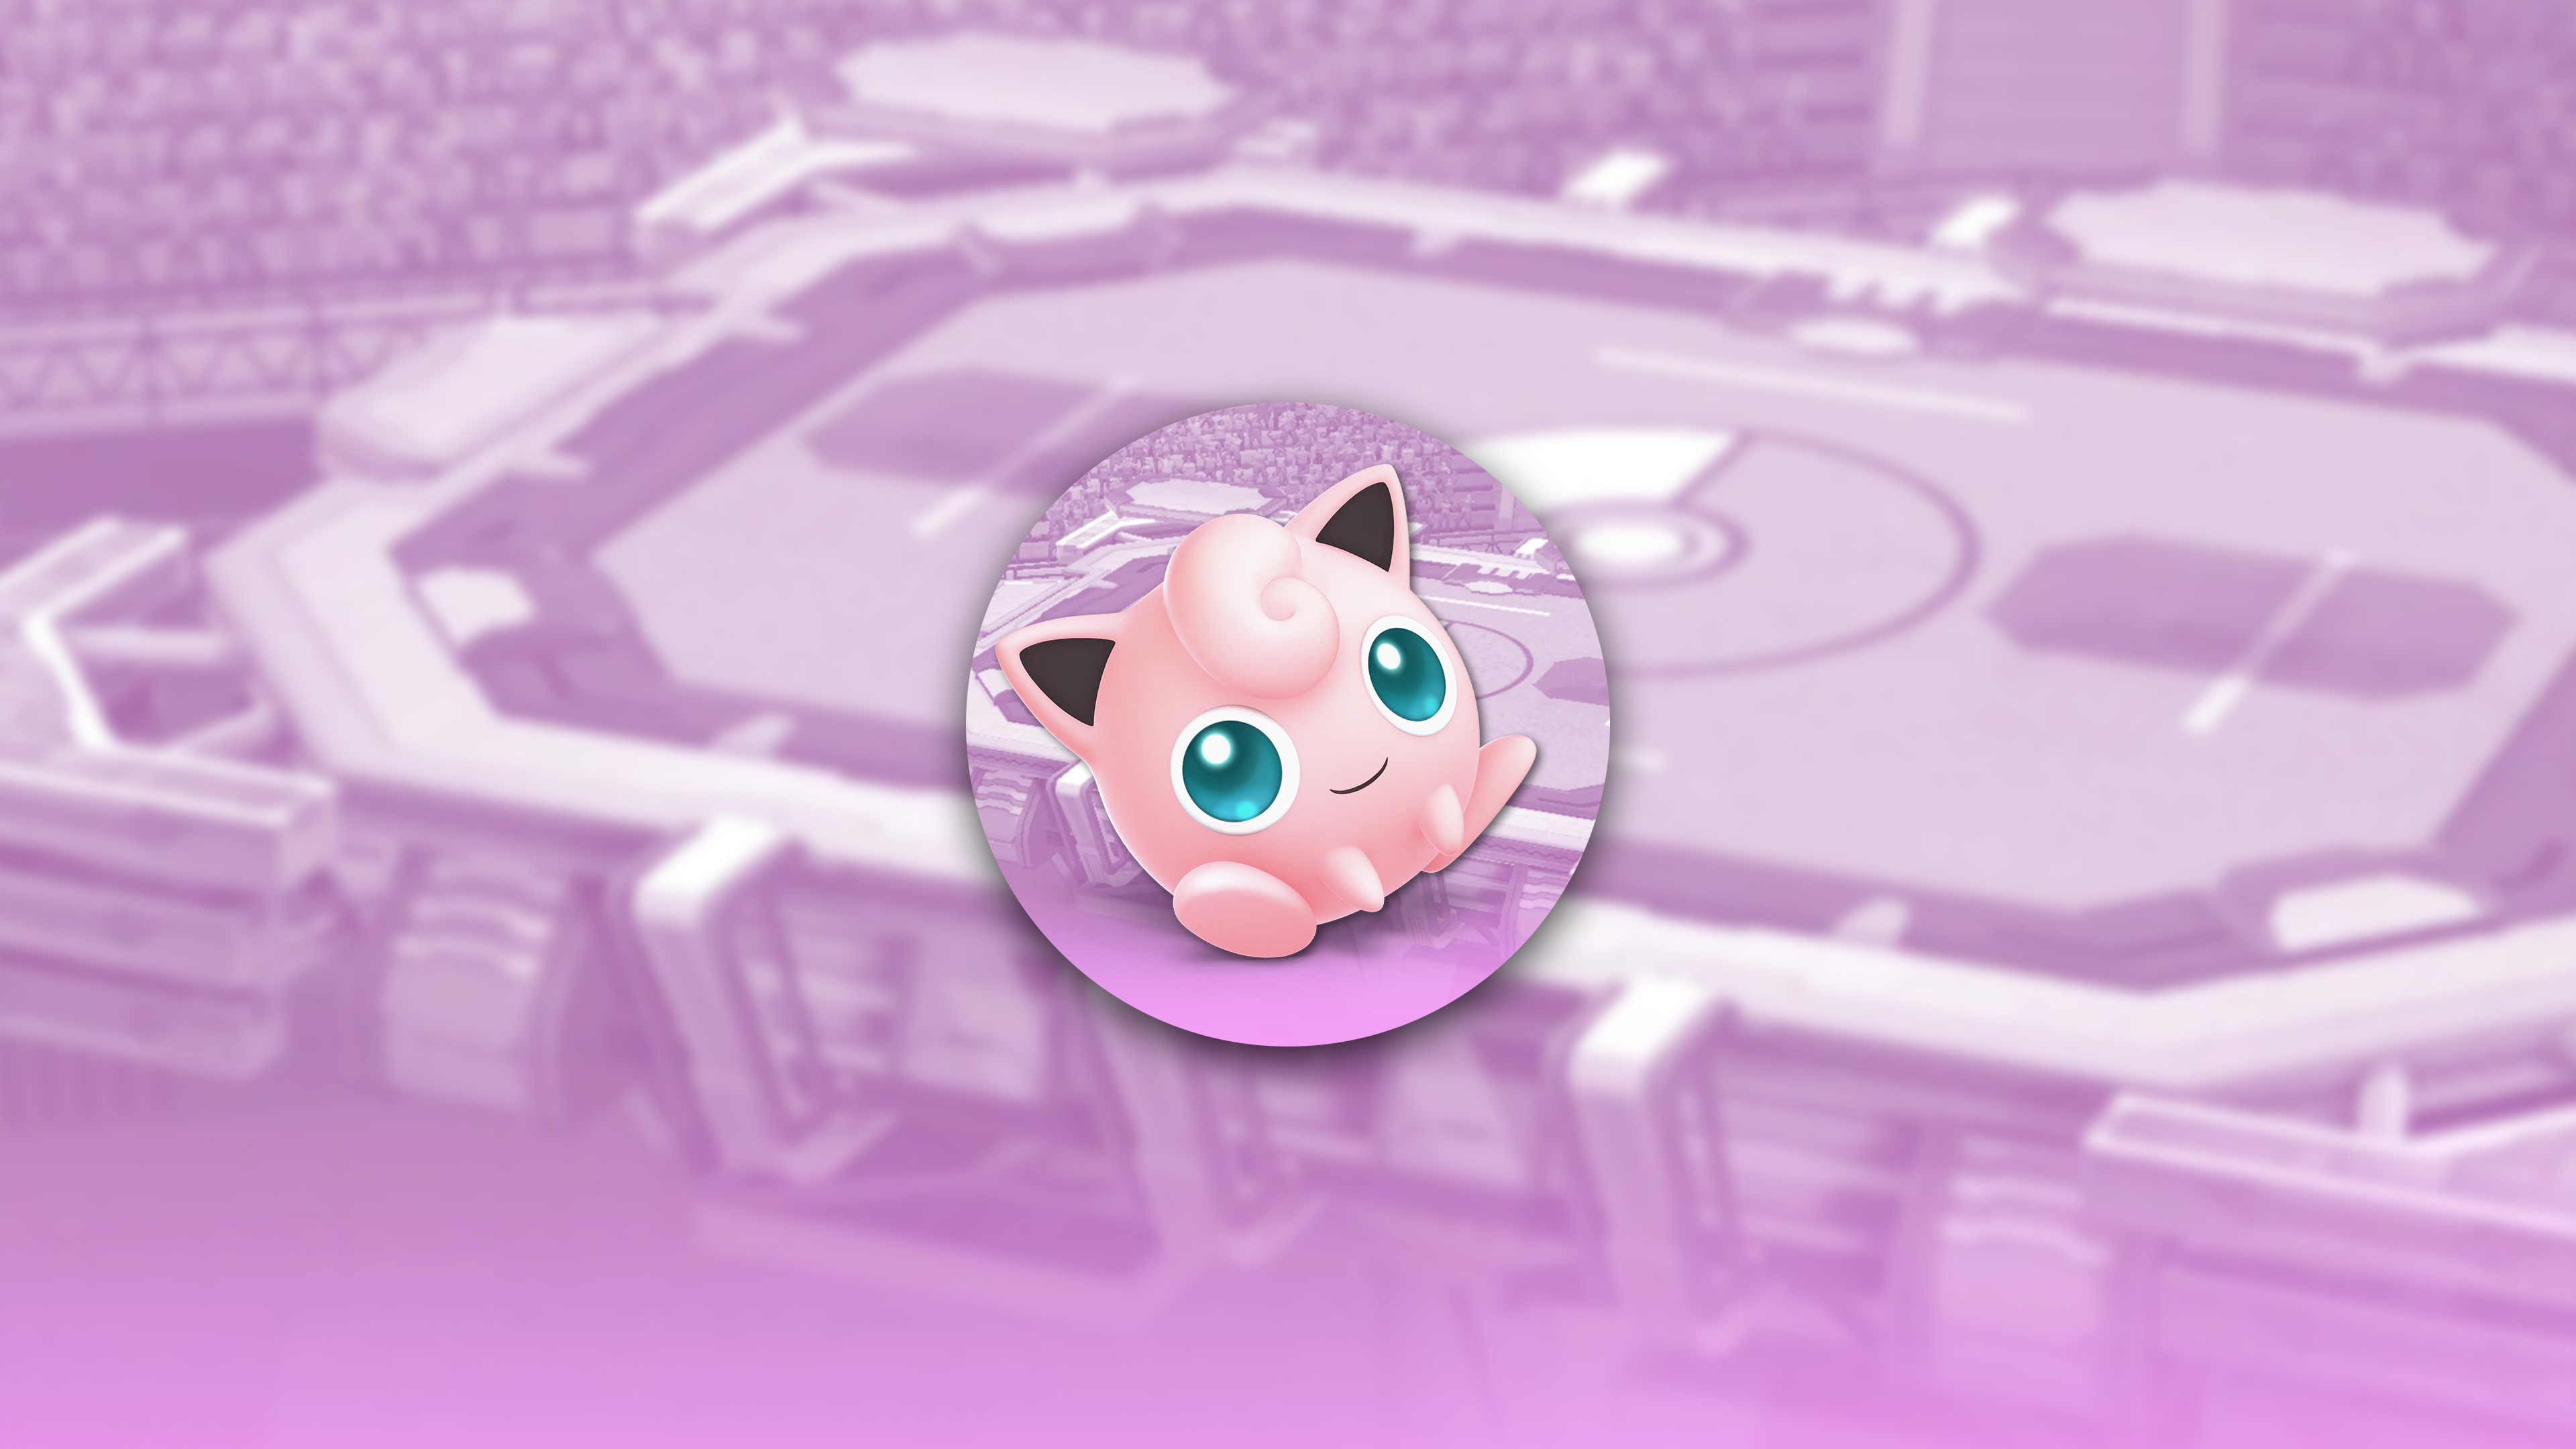 super smash bros ultimate jigglypuff uhd 4k wallpaper